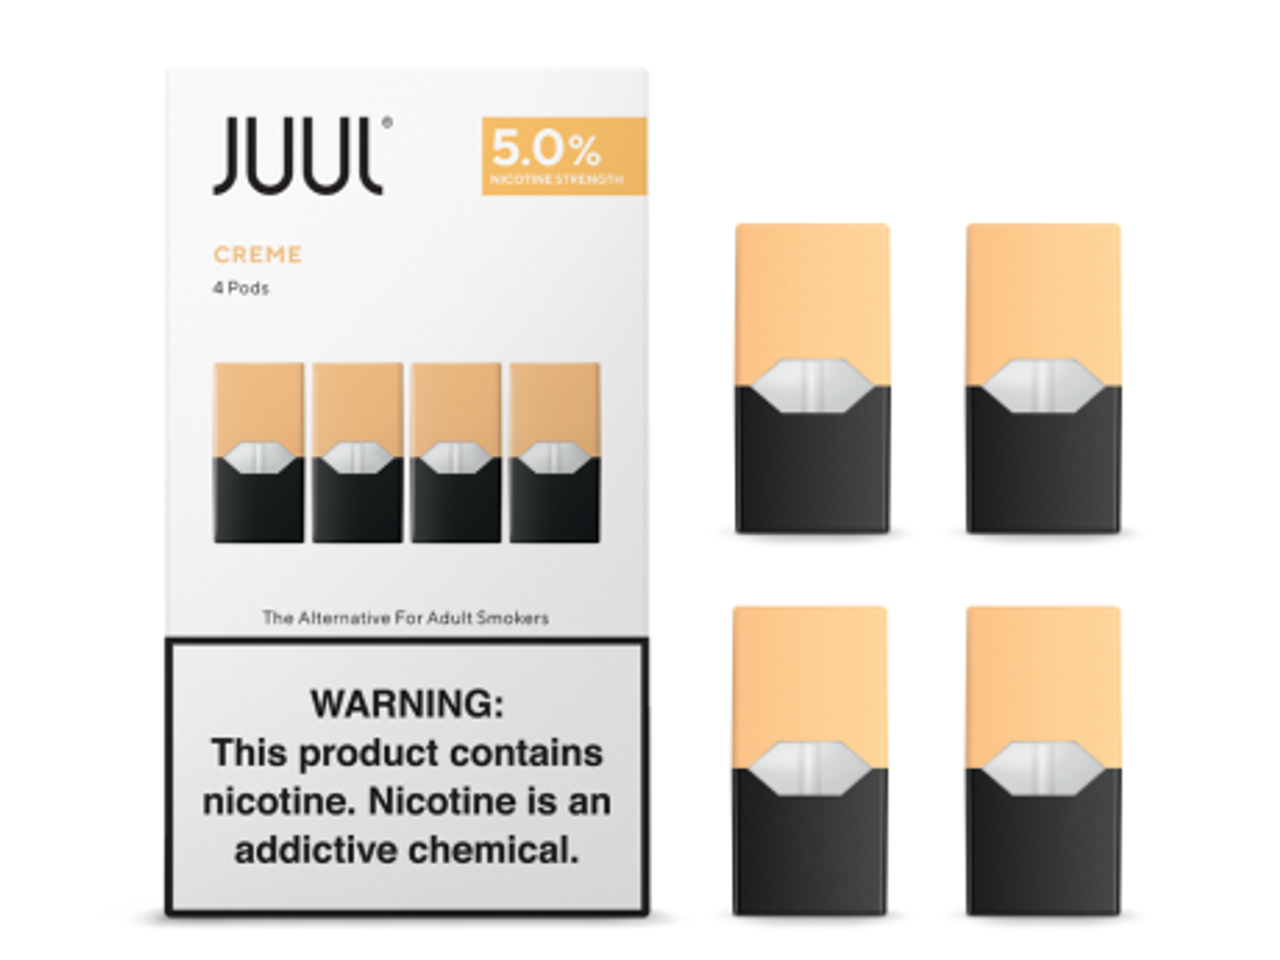 Creme Brulee Vape Pods by Juul Review